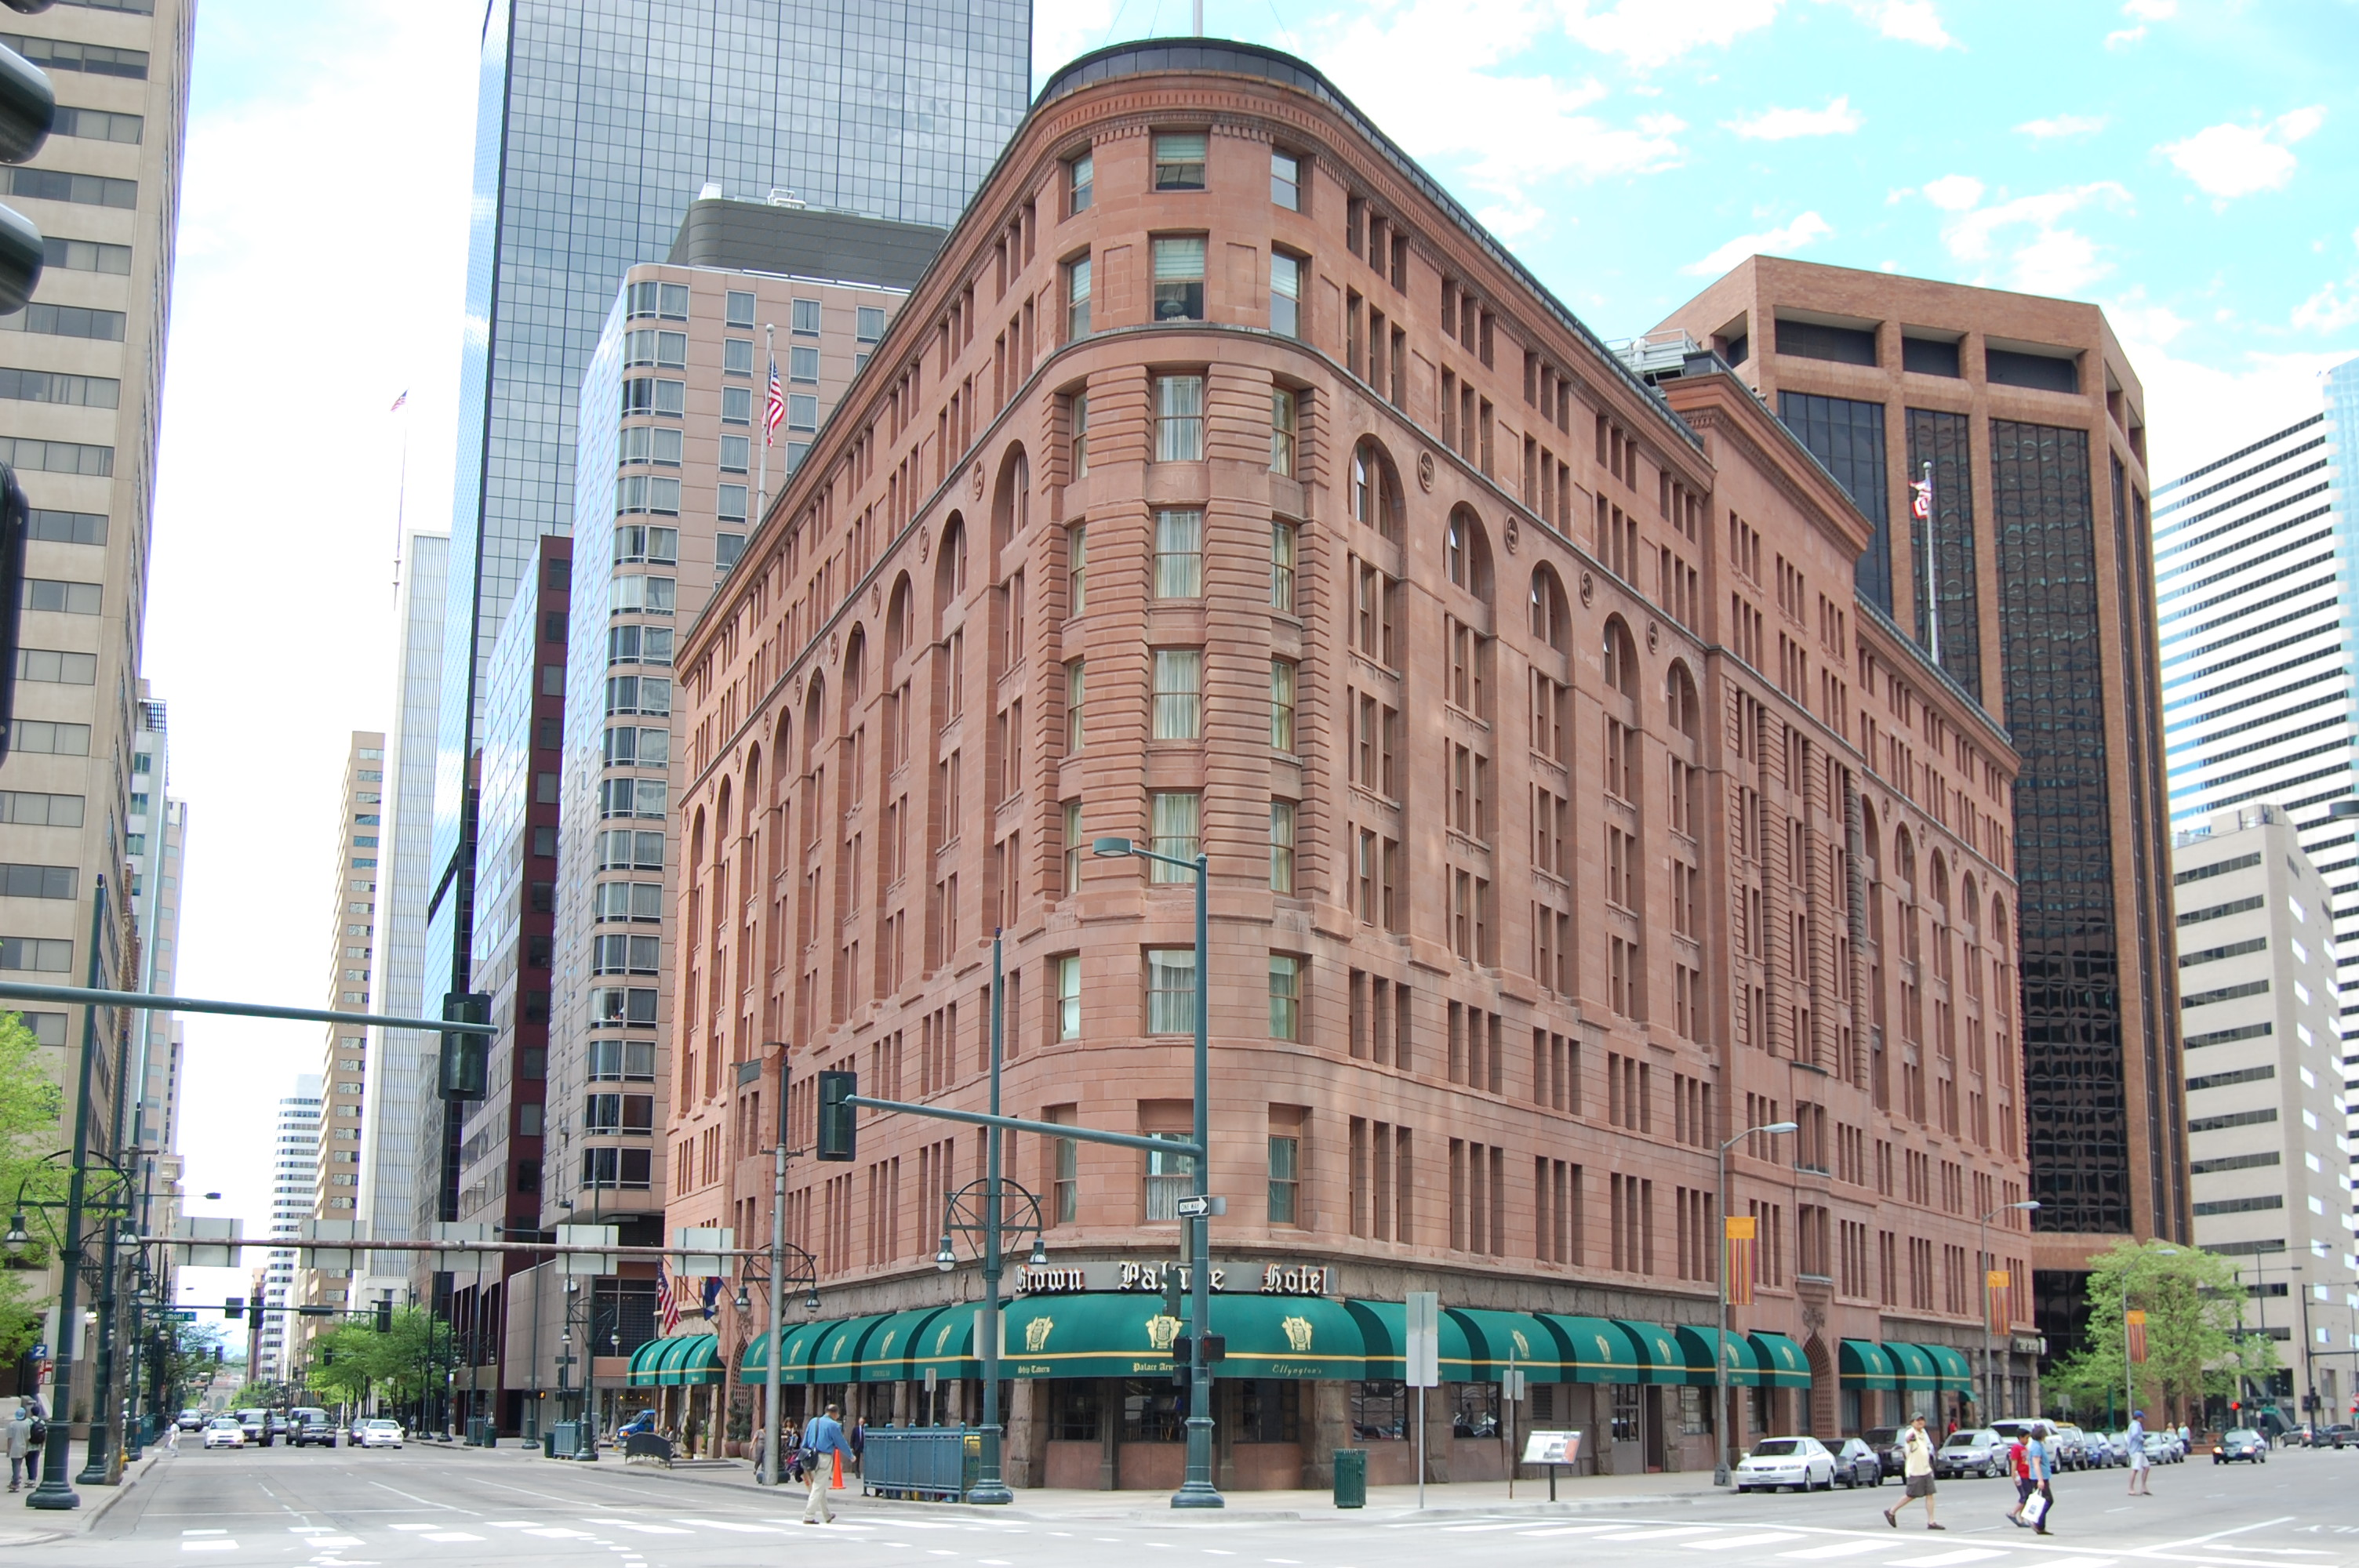 Brown Palace Hotel Denver Wikipedia